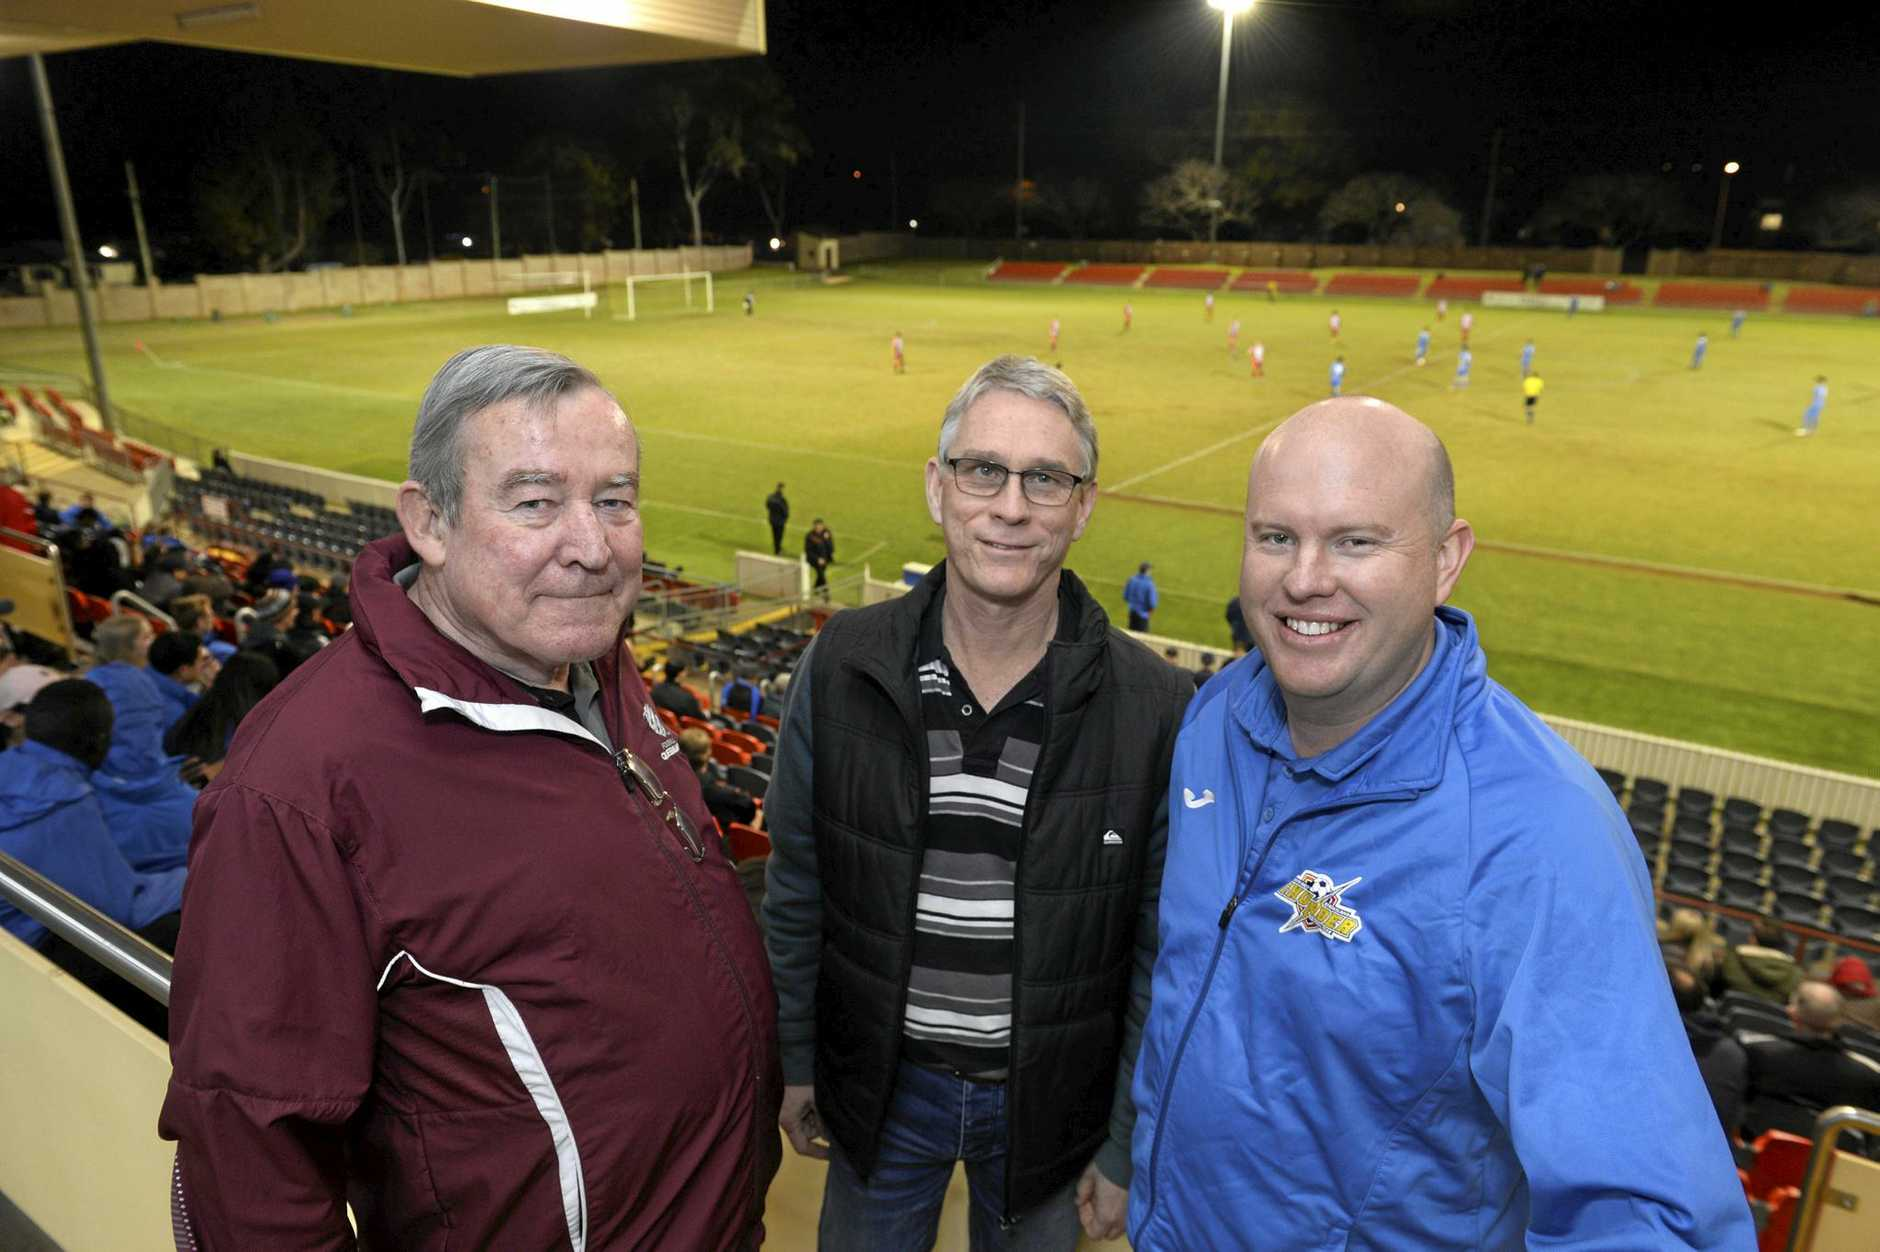 Football Queensland chief executive Geoff Foster (left) and president Greg Redington OAM with South-West Thunder president Wade Eiser (right) at the Thunder home game against Olympic in NPL Queensland round 19 football at Clive Berghofer Stadium, Saturday, July 29, 2017.